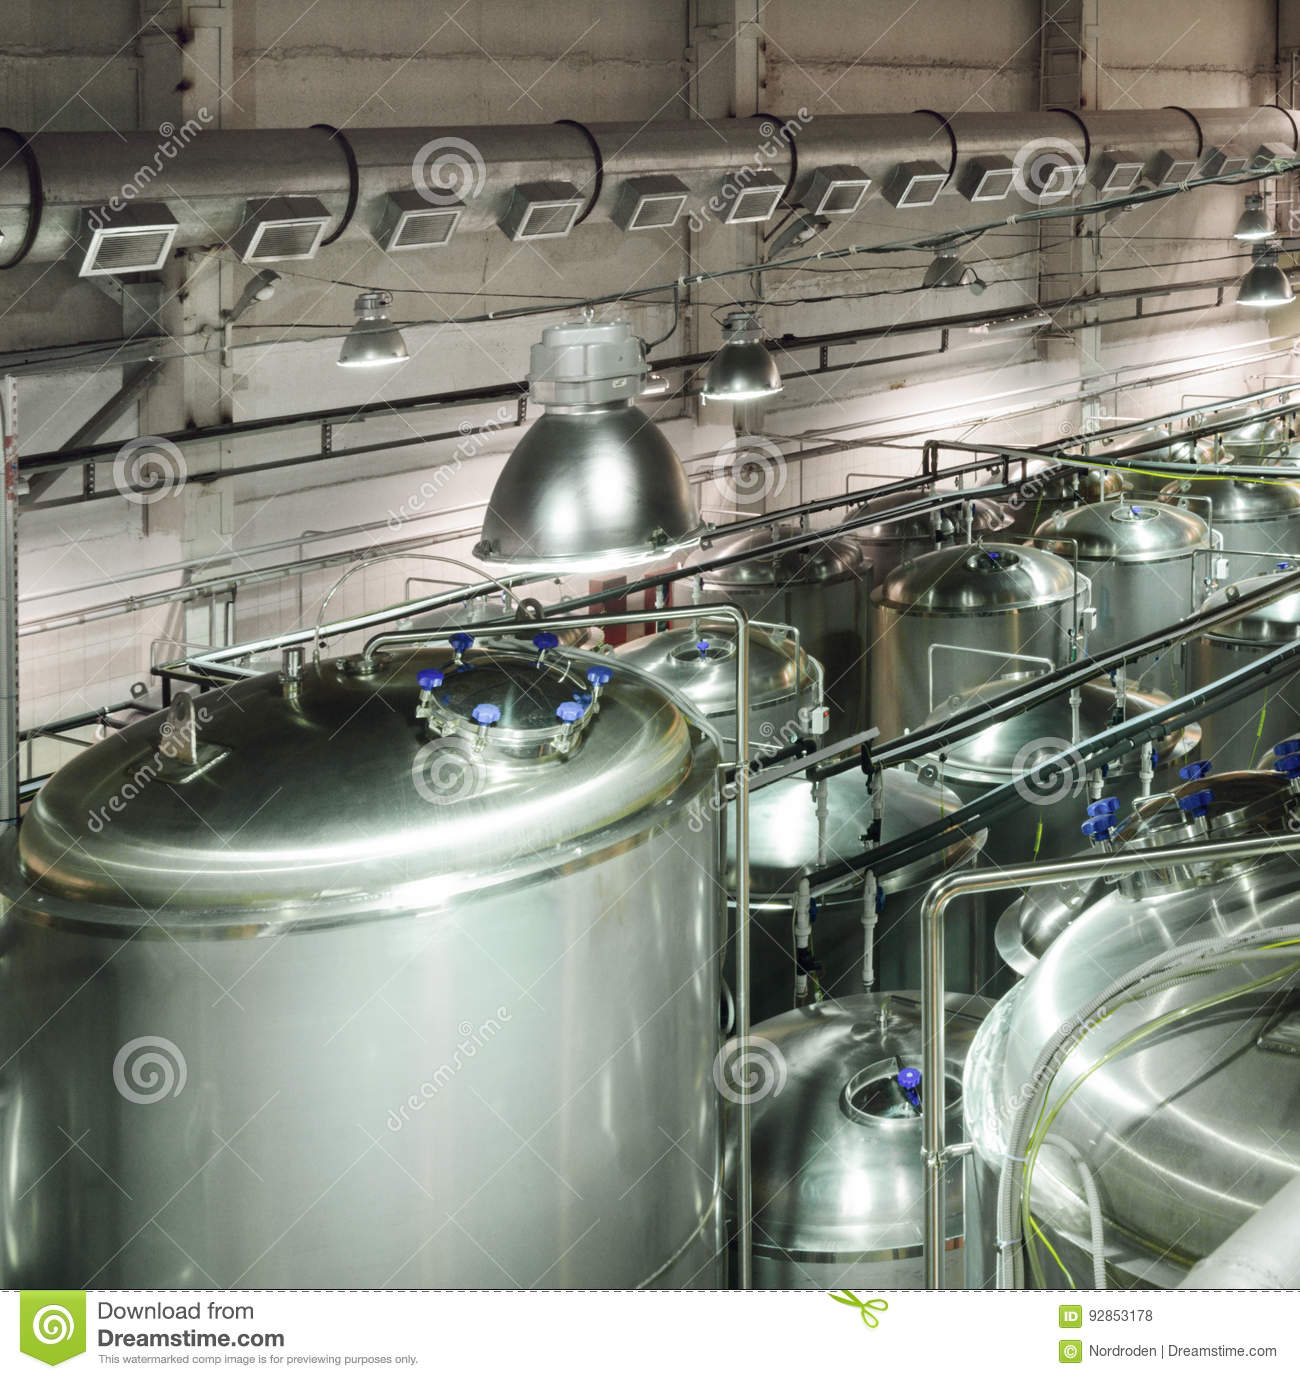 697ec77035488 Metal Tanks For Storage And Processing Of Food Liquids. Stock Photo ...